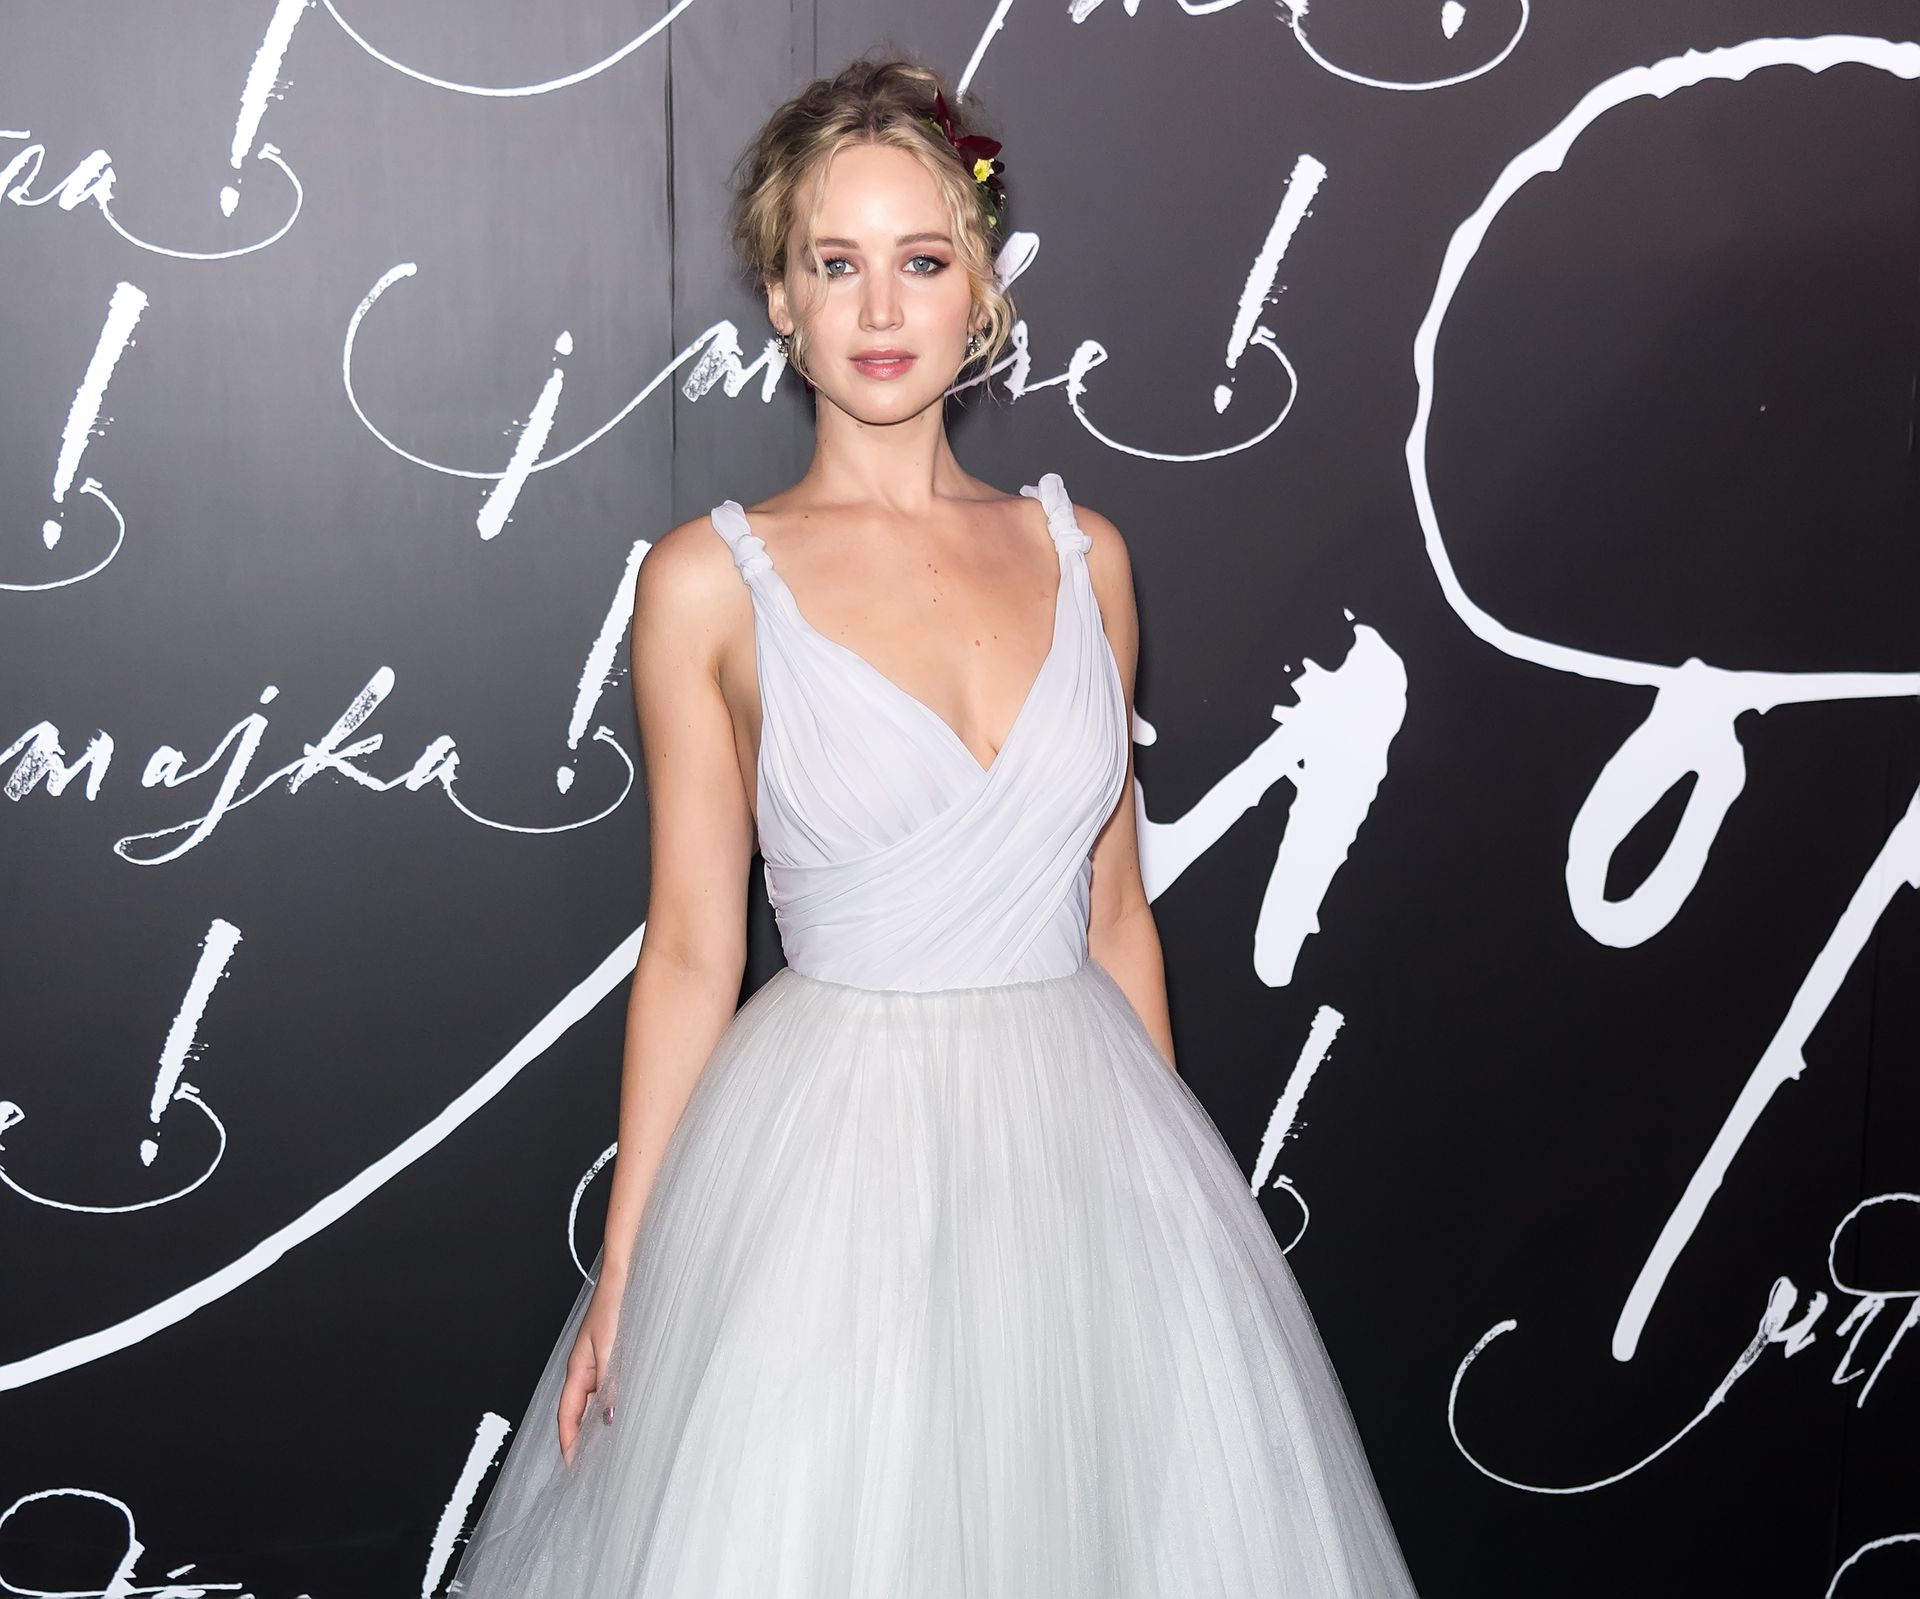 """Oscar-winner, Jennifer Lawrence, can add a new and very glamorous role to her resume as the face of Dior's new fragrance.<br /> <br /> The S<em>ilver Linings Playbook</em> star and house muse has been announced as the face and star of the campaign of the French brand's yet-to-be-named scent, due out later this year.<br /> <br /> It's the first time the luxury label has released a fragrance in almost 20 years, with the last being J'Adore in 1999.<br /> <br /> <a href=""""http://http://wwd.com/fashion-news/fashion-scoops/exclusive-jennifer-lawrence-to-front-new-dior-perfume-1202719245/"""" target=""""_blank"""" draggable=""""false"""">In a statement</a>, the luxury brand called the new scent by Dior perfumer-creator François Demachy """"an unprecedented fragrance and a powerful universe which mark the beginning of a new era for fragrance at the house of Dior.""""<br /> <br /> The in-demand actress has been an ambassador for Dior since 2012, starring in numerous fashion and accessories campaign.<br /> <br /> She was also was a part of the A-list line-up for last year's digital charitable initiative 'Dior Love Chain', supporting education for young women in Kenya alongside other house ambassadors such as a Natalie Portman, Johnny Depp and Robert Pattinson.<br /> <br /> As house muse, it's only natural that Dior makes up a large part of Lawrence's red-carpet aesthetic. <br /> <br /> Click through to see some of her best style moments in Christian Dior."""